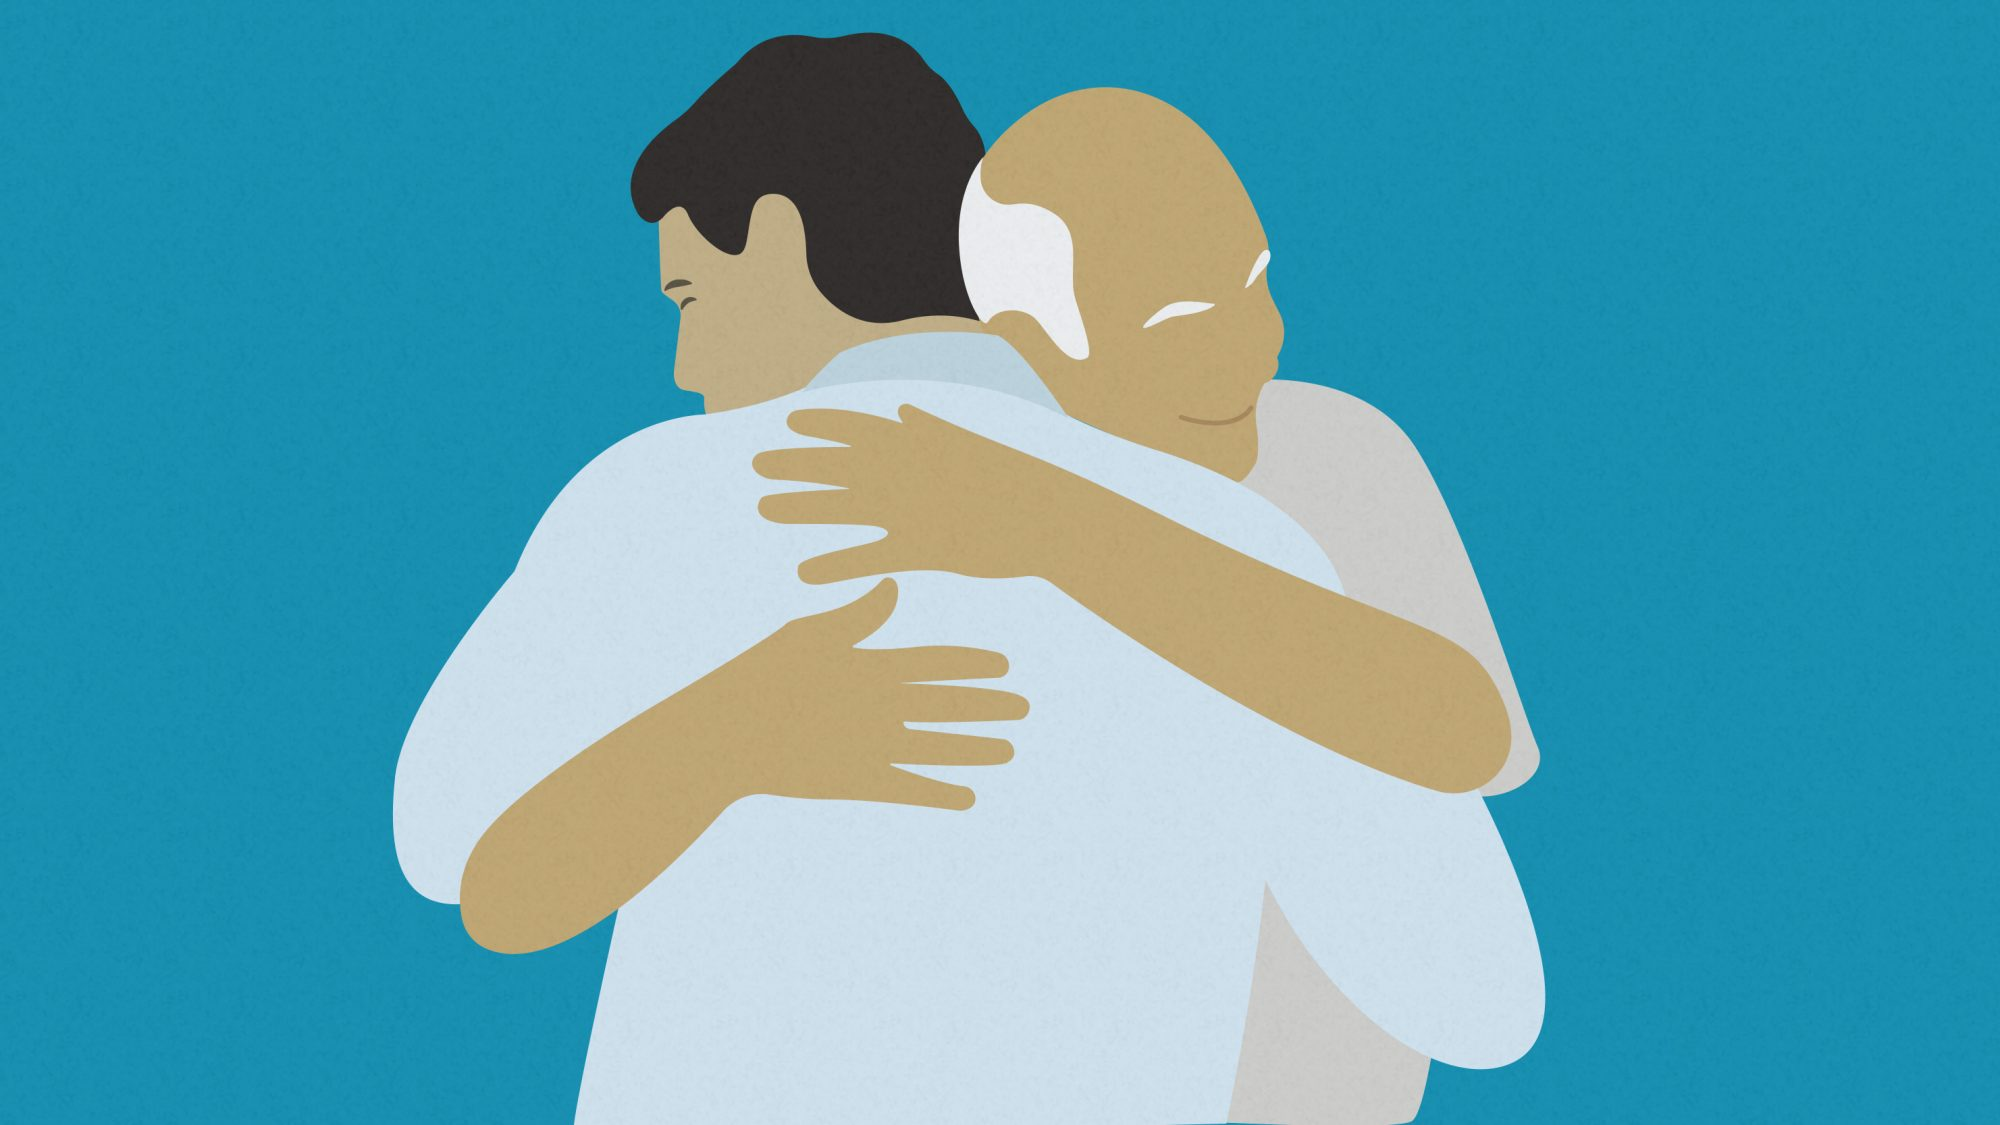 Father's day quotes - dad quotes from son (father and son hugging)